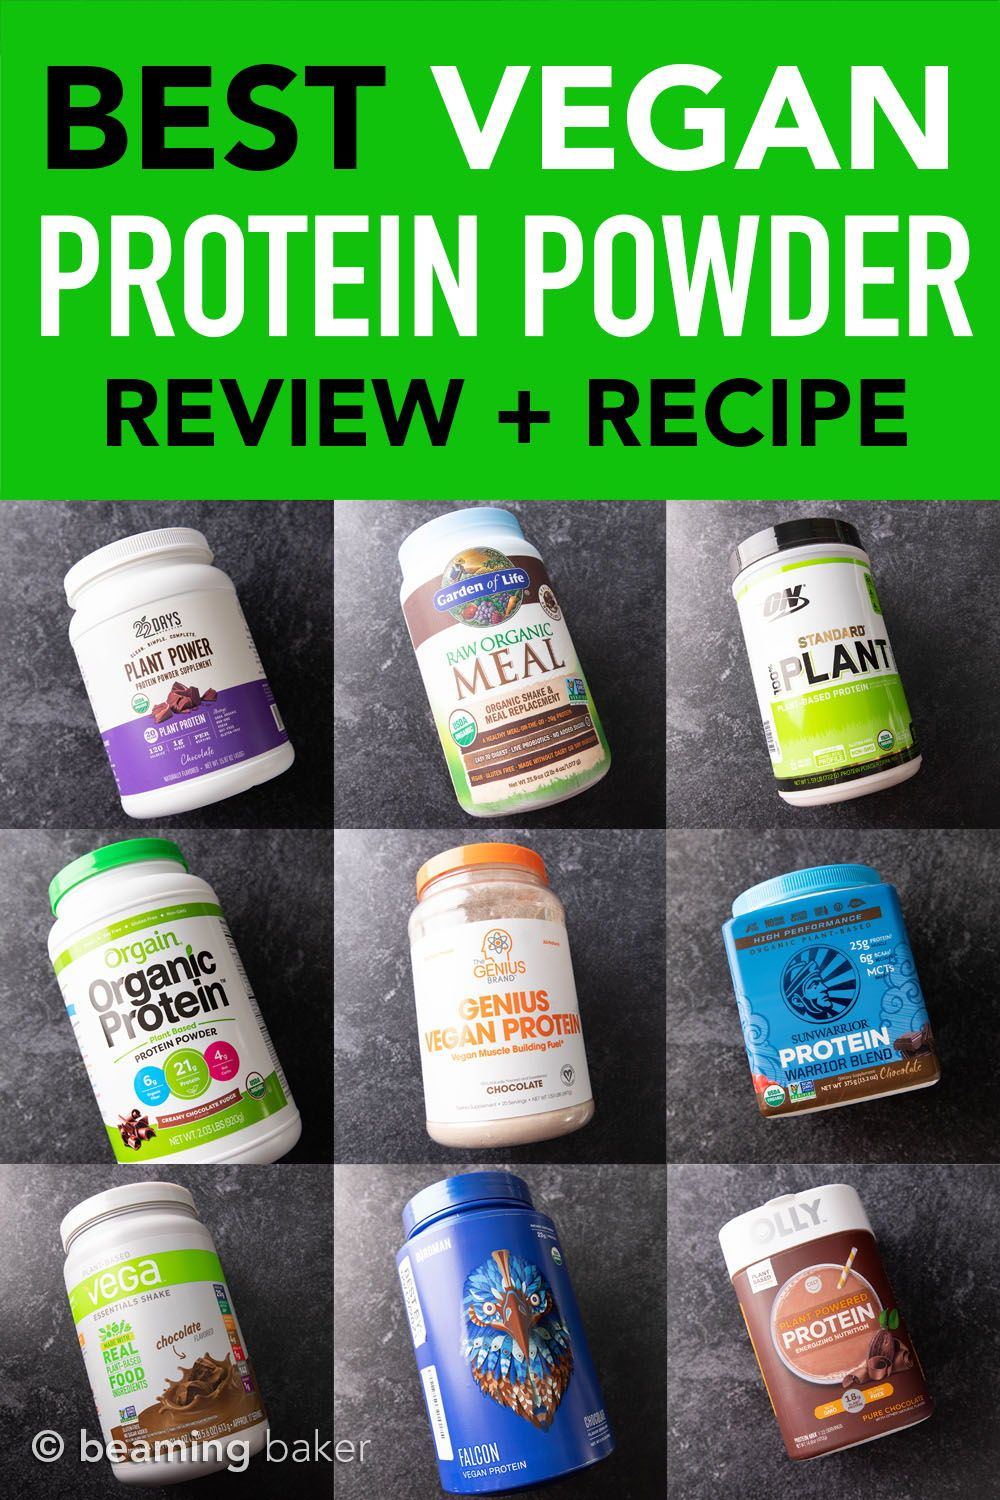 Best Vegan Protein Powder Ranked Chocolate Edition Recipe In 2020 Best Vegan Protein Powder Vegan Protein Powder Best Vegan Protein